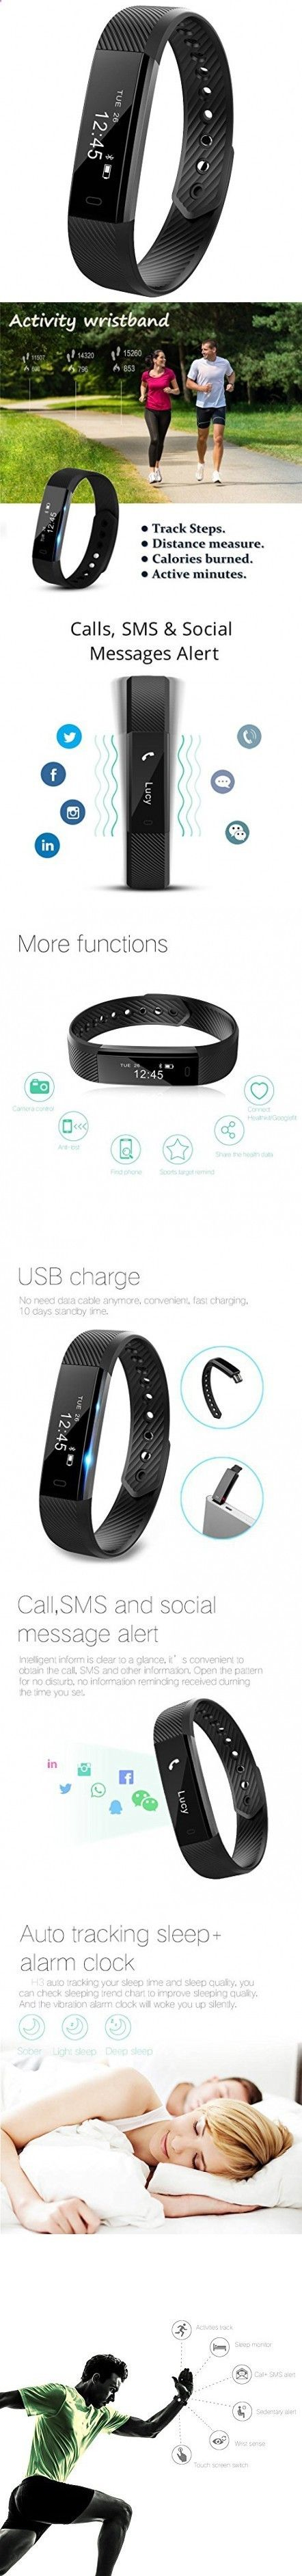 Activity Bracelets Fitness - Activity Bracelets Fitness - Smart Fitness Activity Tracker, 11TT YG3 Sport Bracelet Wristband Pedometer Touch Screen with Step Tracker/Calorie Counter/Sleep Monitor/Call Notification Push for iPhone iOS and Android Phone (Black) - The benefits of wearing these smart bracelets are not only in your comfort, but also in that they are able to control all your physical progress - The benefits of wearing these smart bracelets are not only in your comfort, but al...